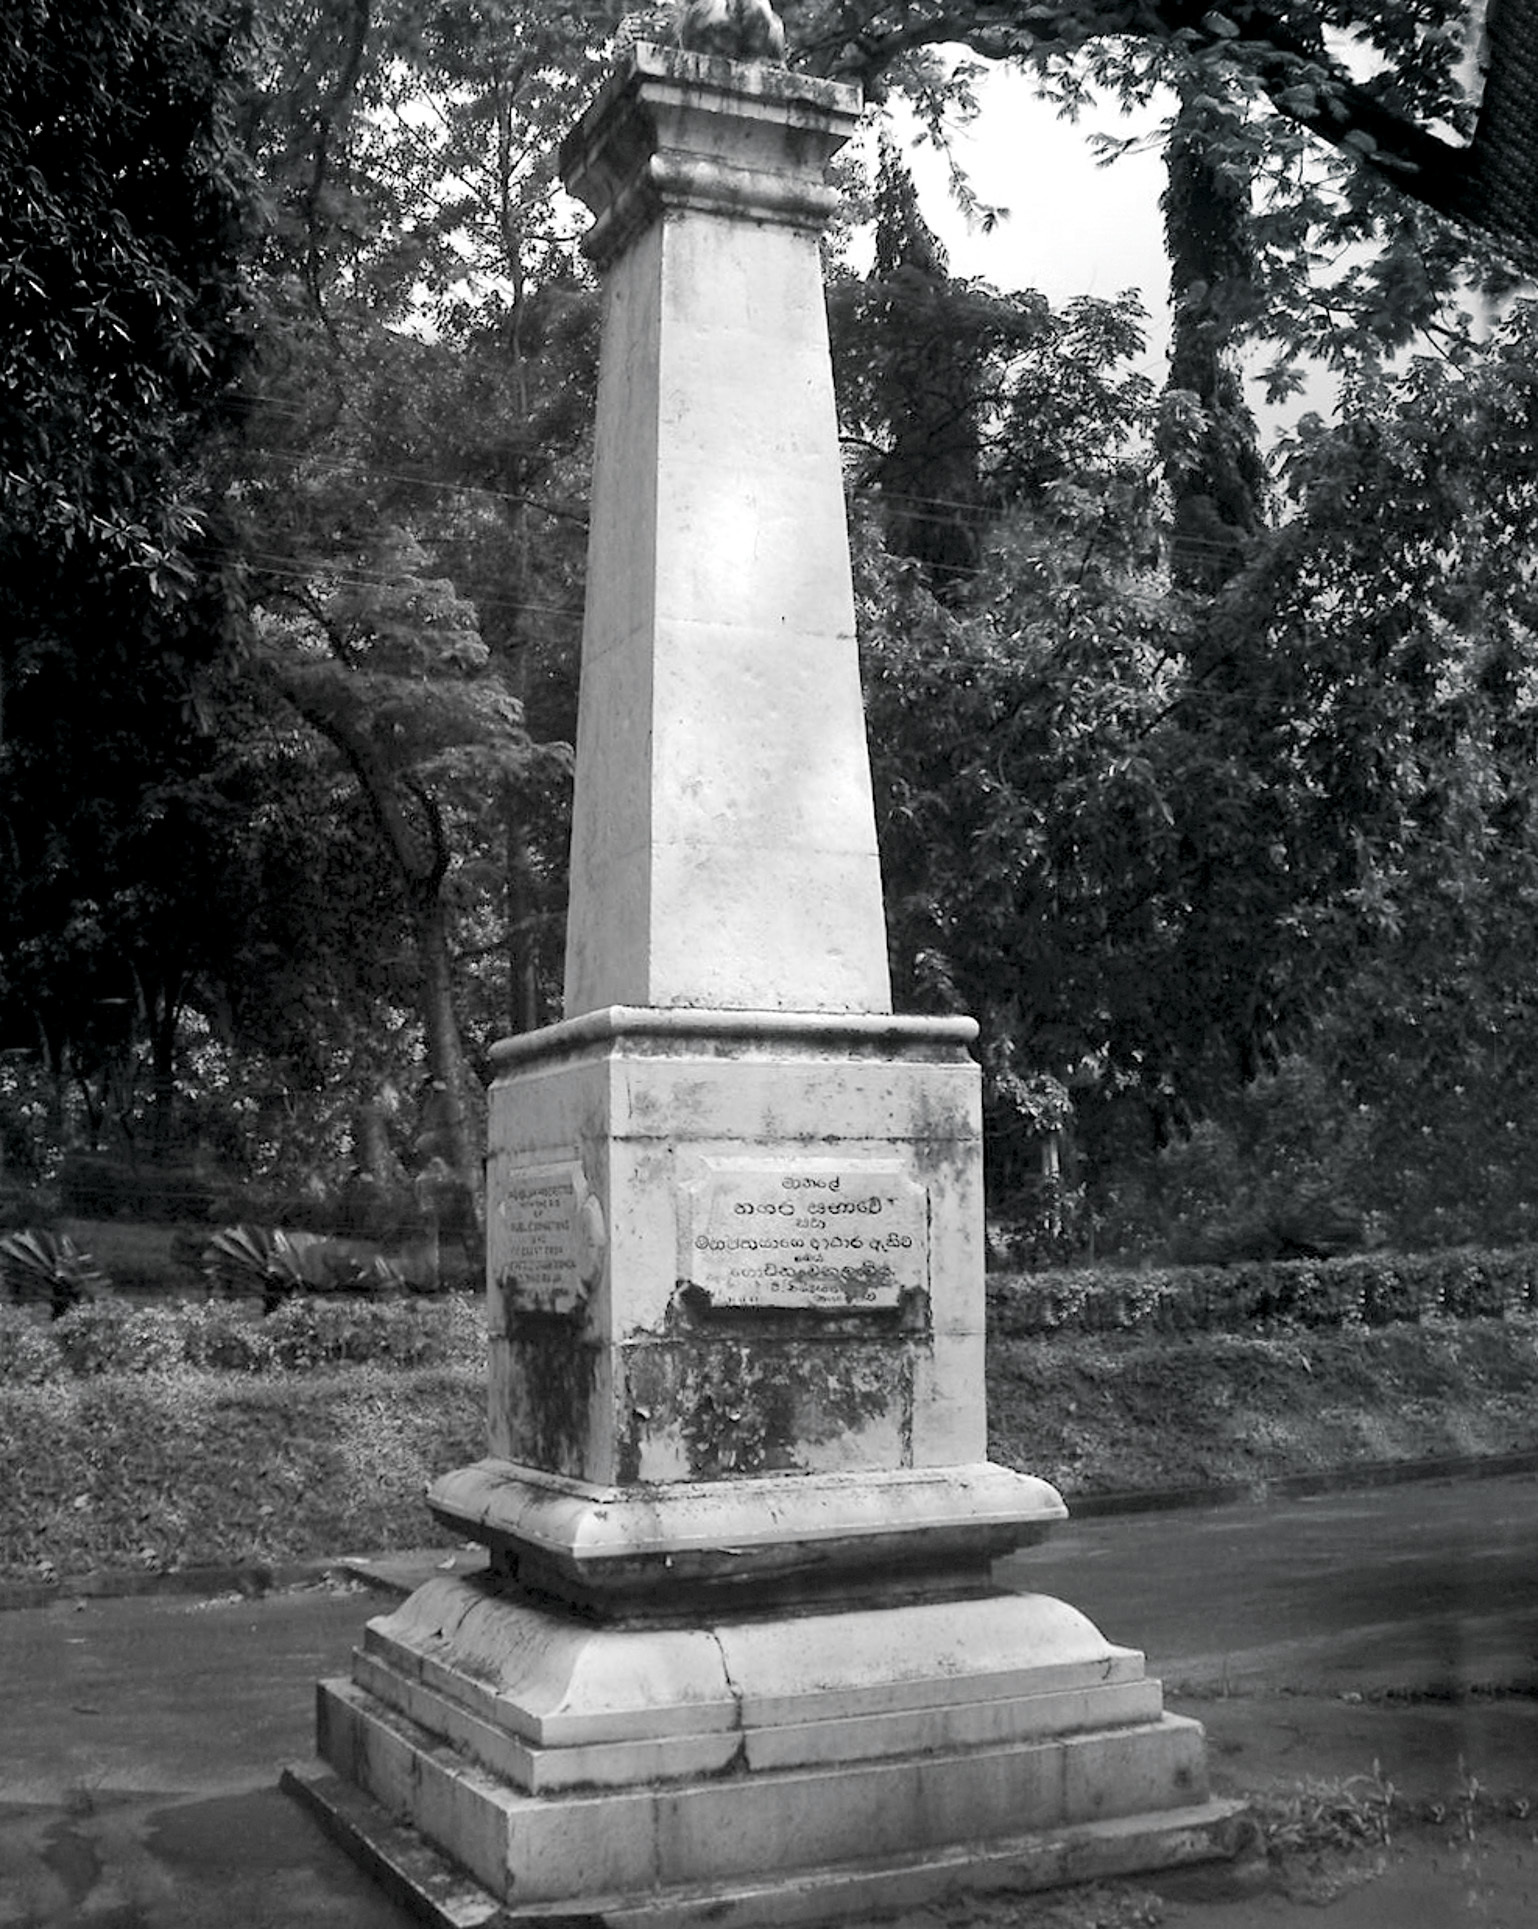 The Matale Rebellion Memorial